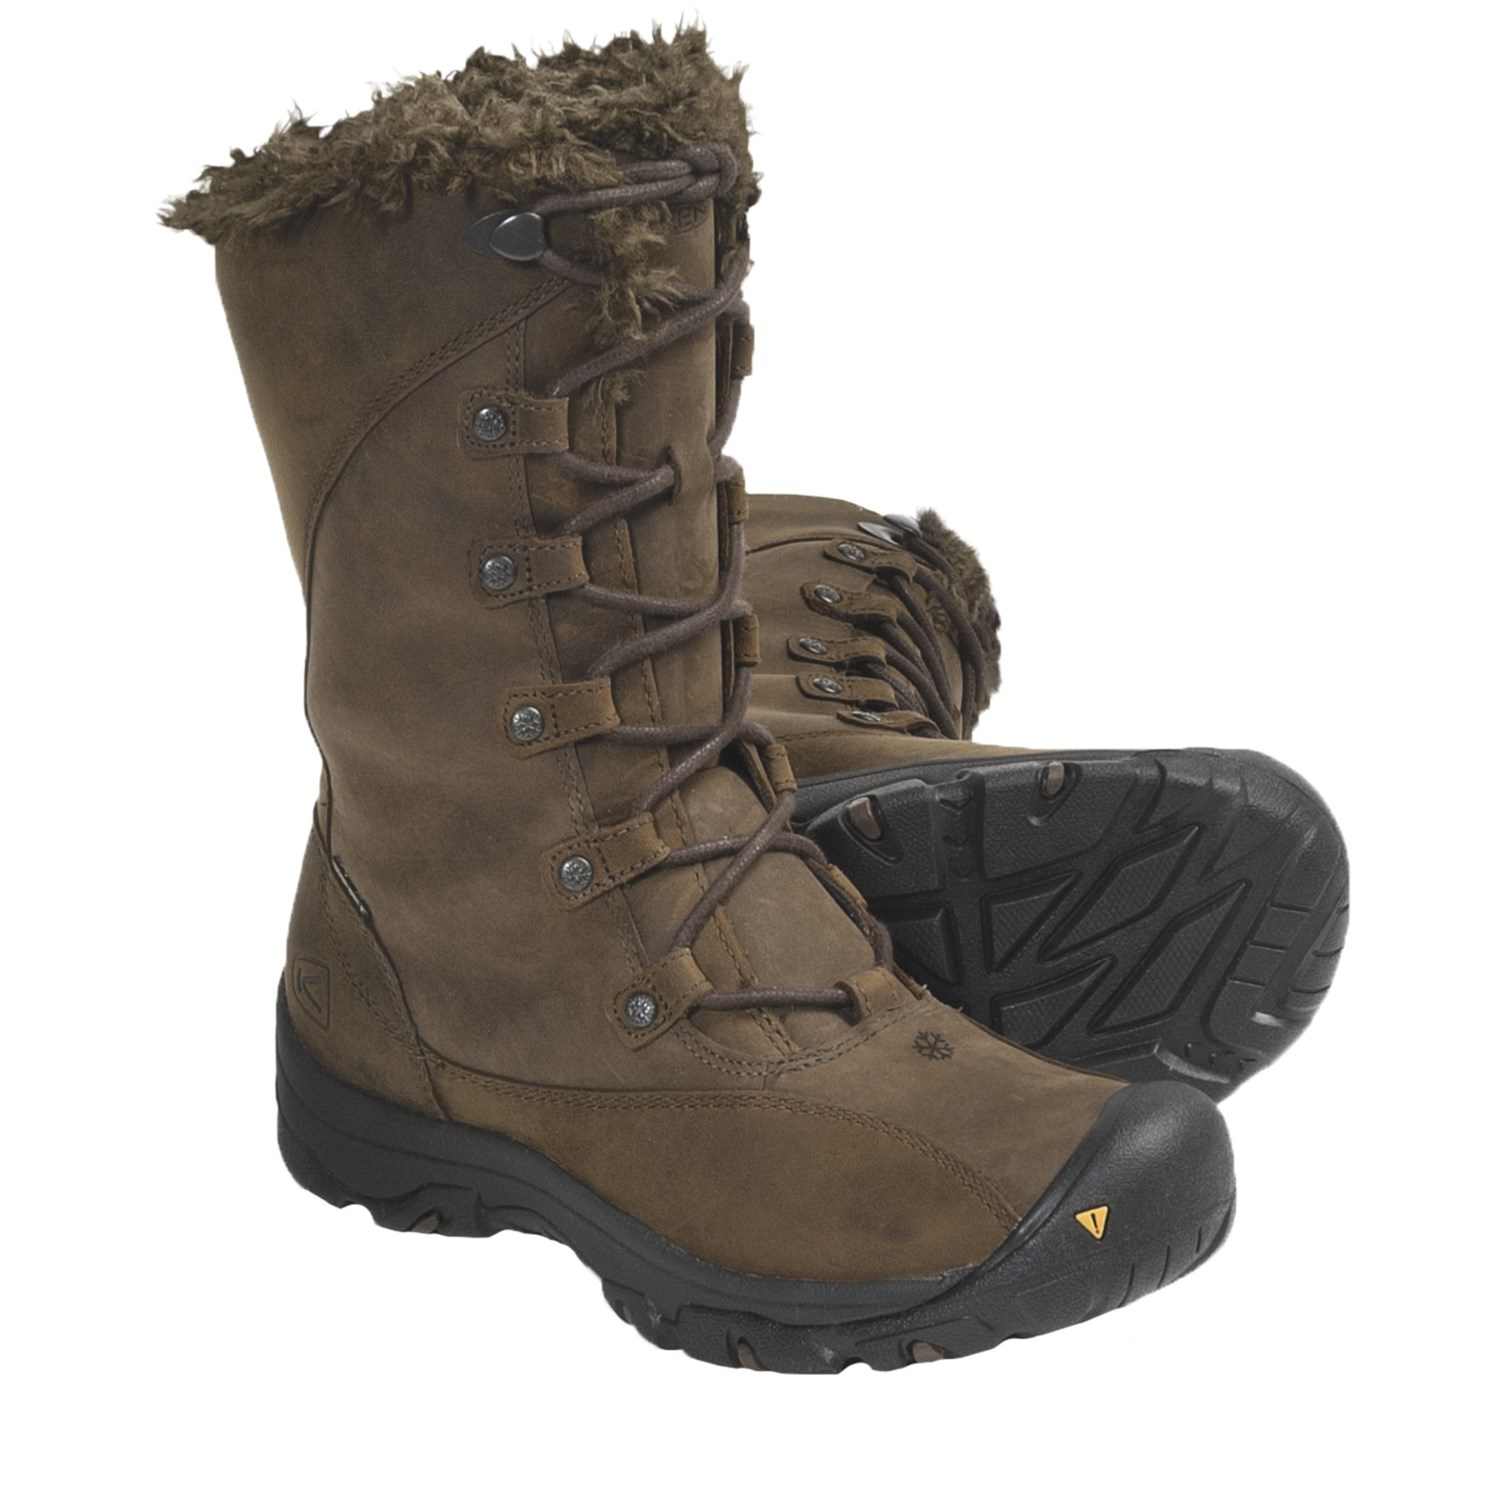 keen bailey high winter boots waterproof insulated for